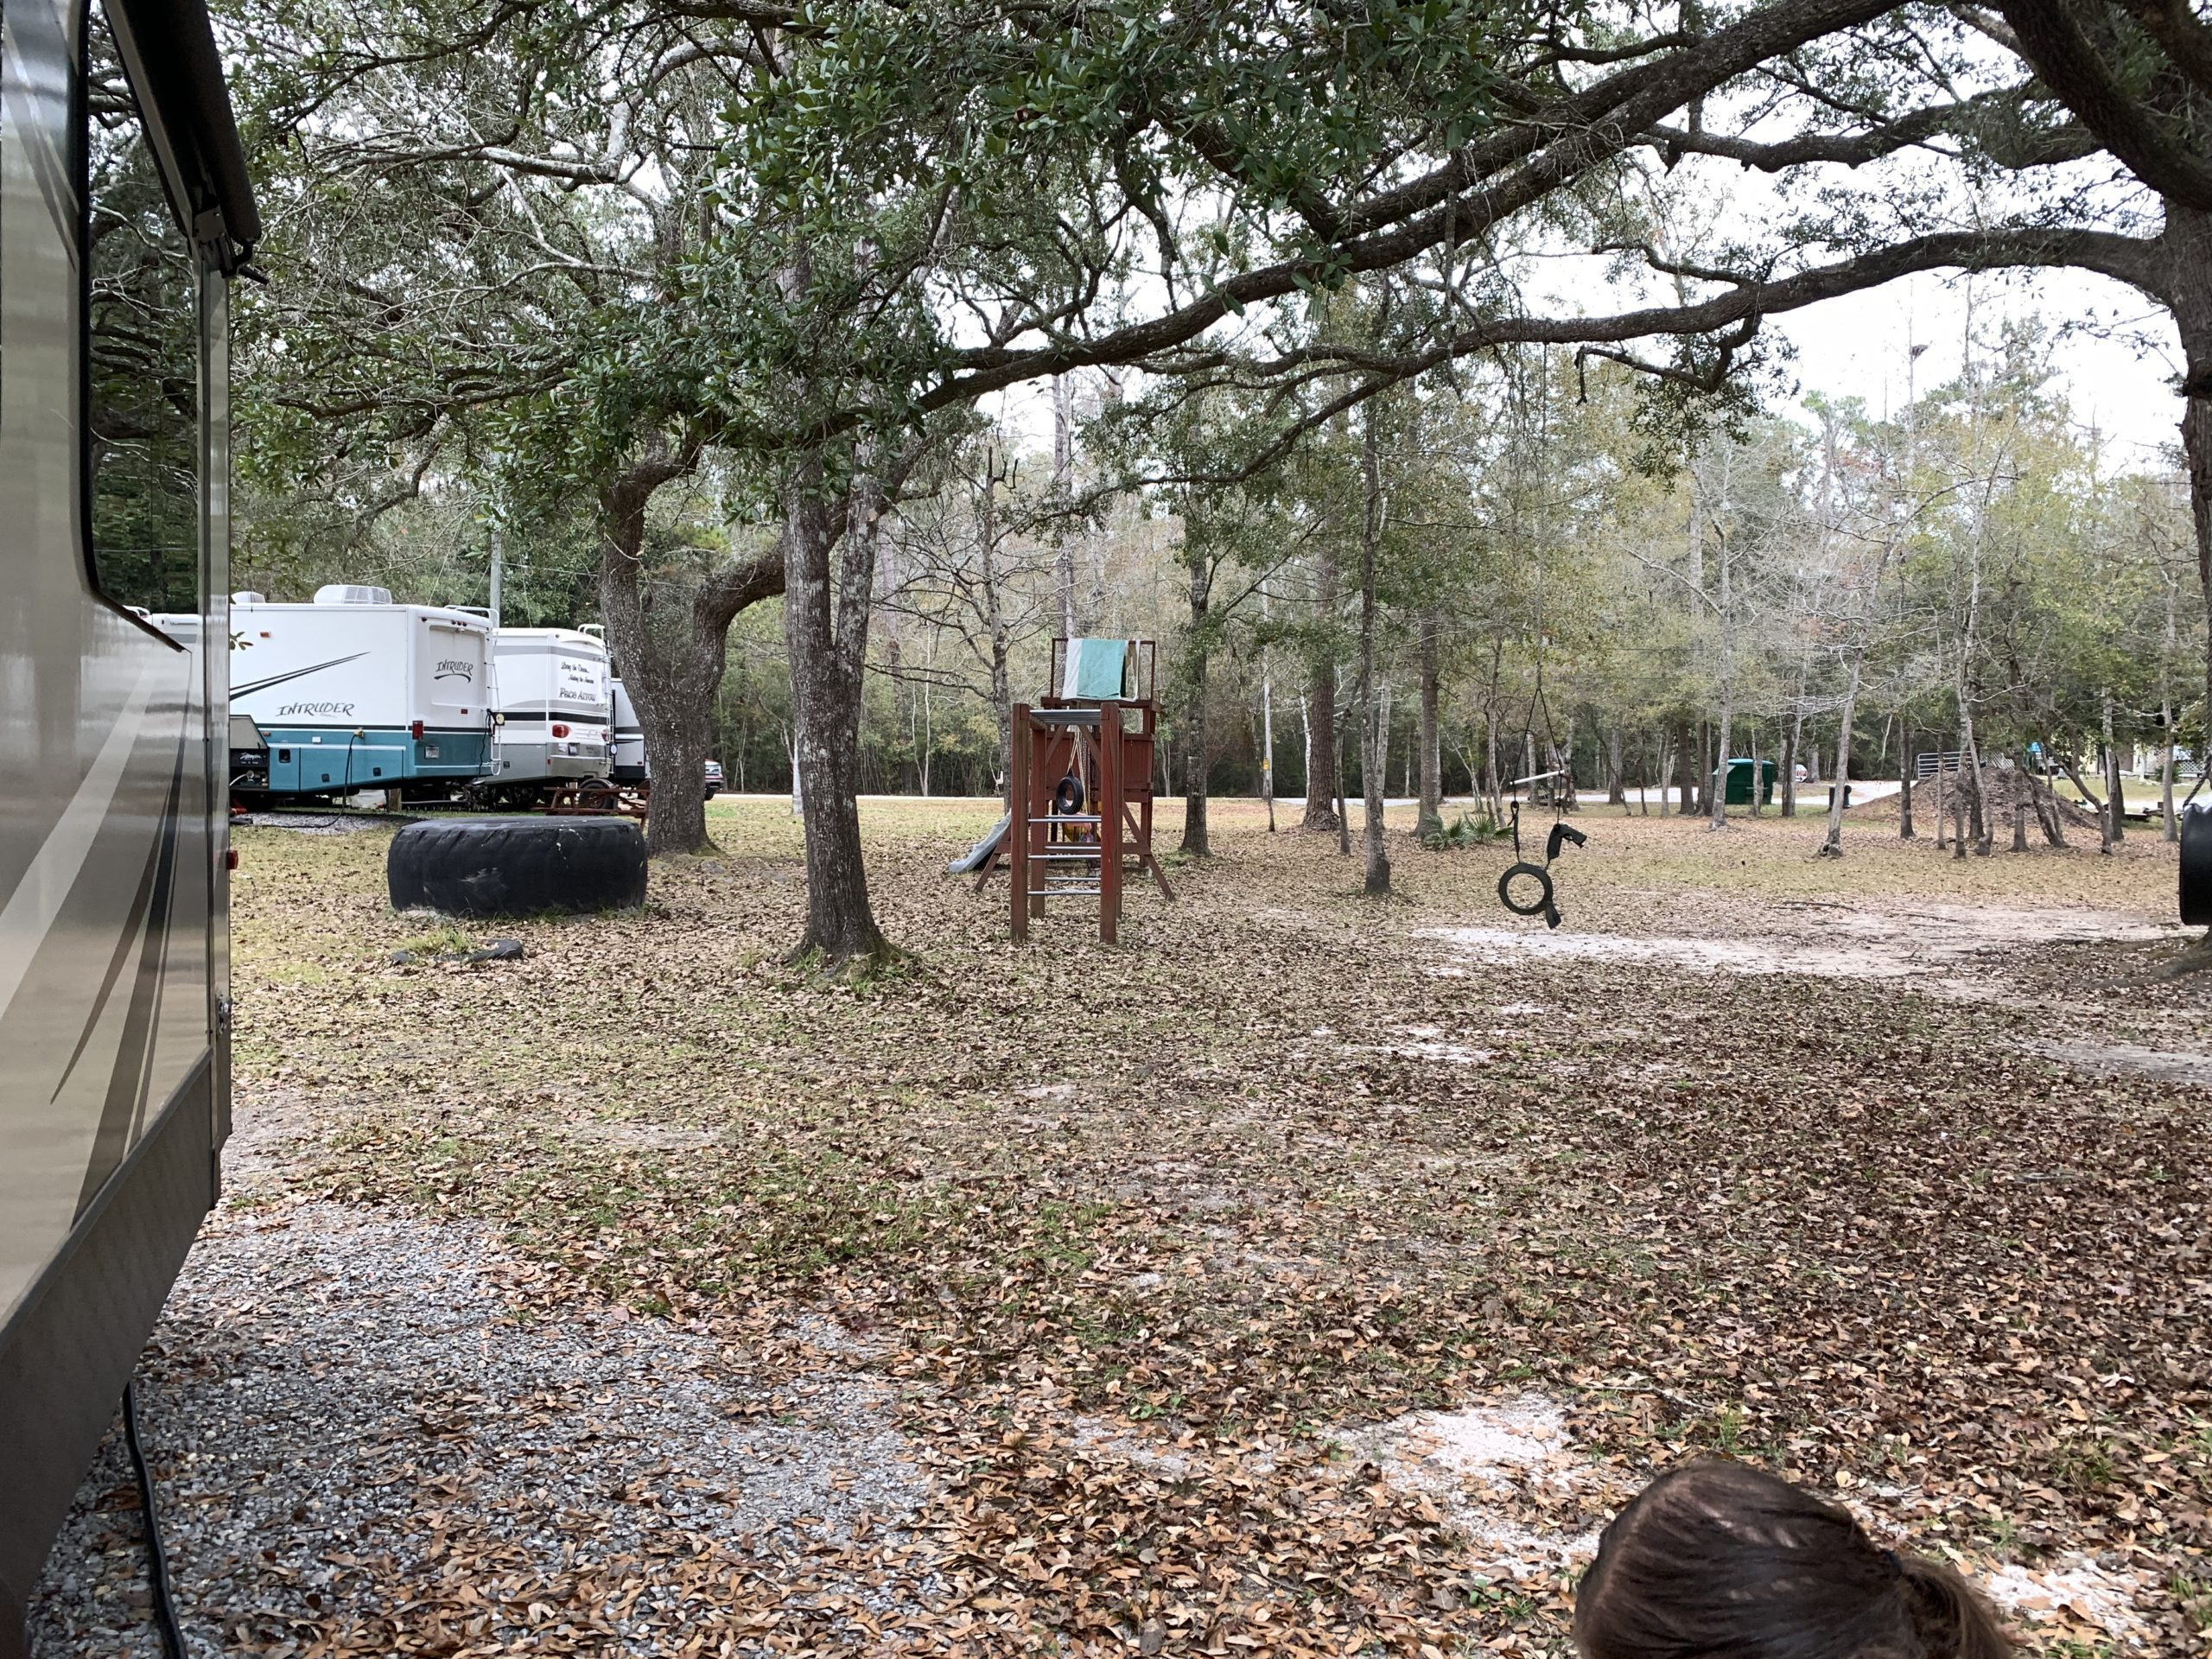 a playground surrounded by trees and a few rv's